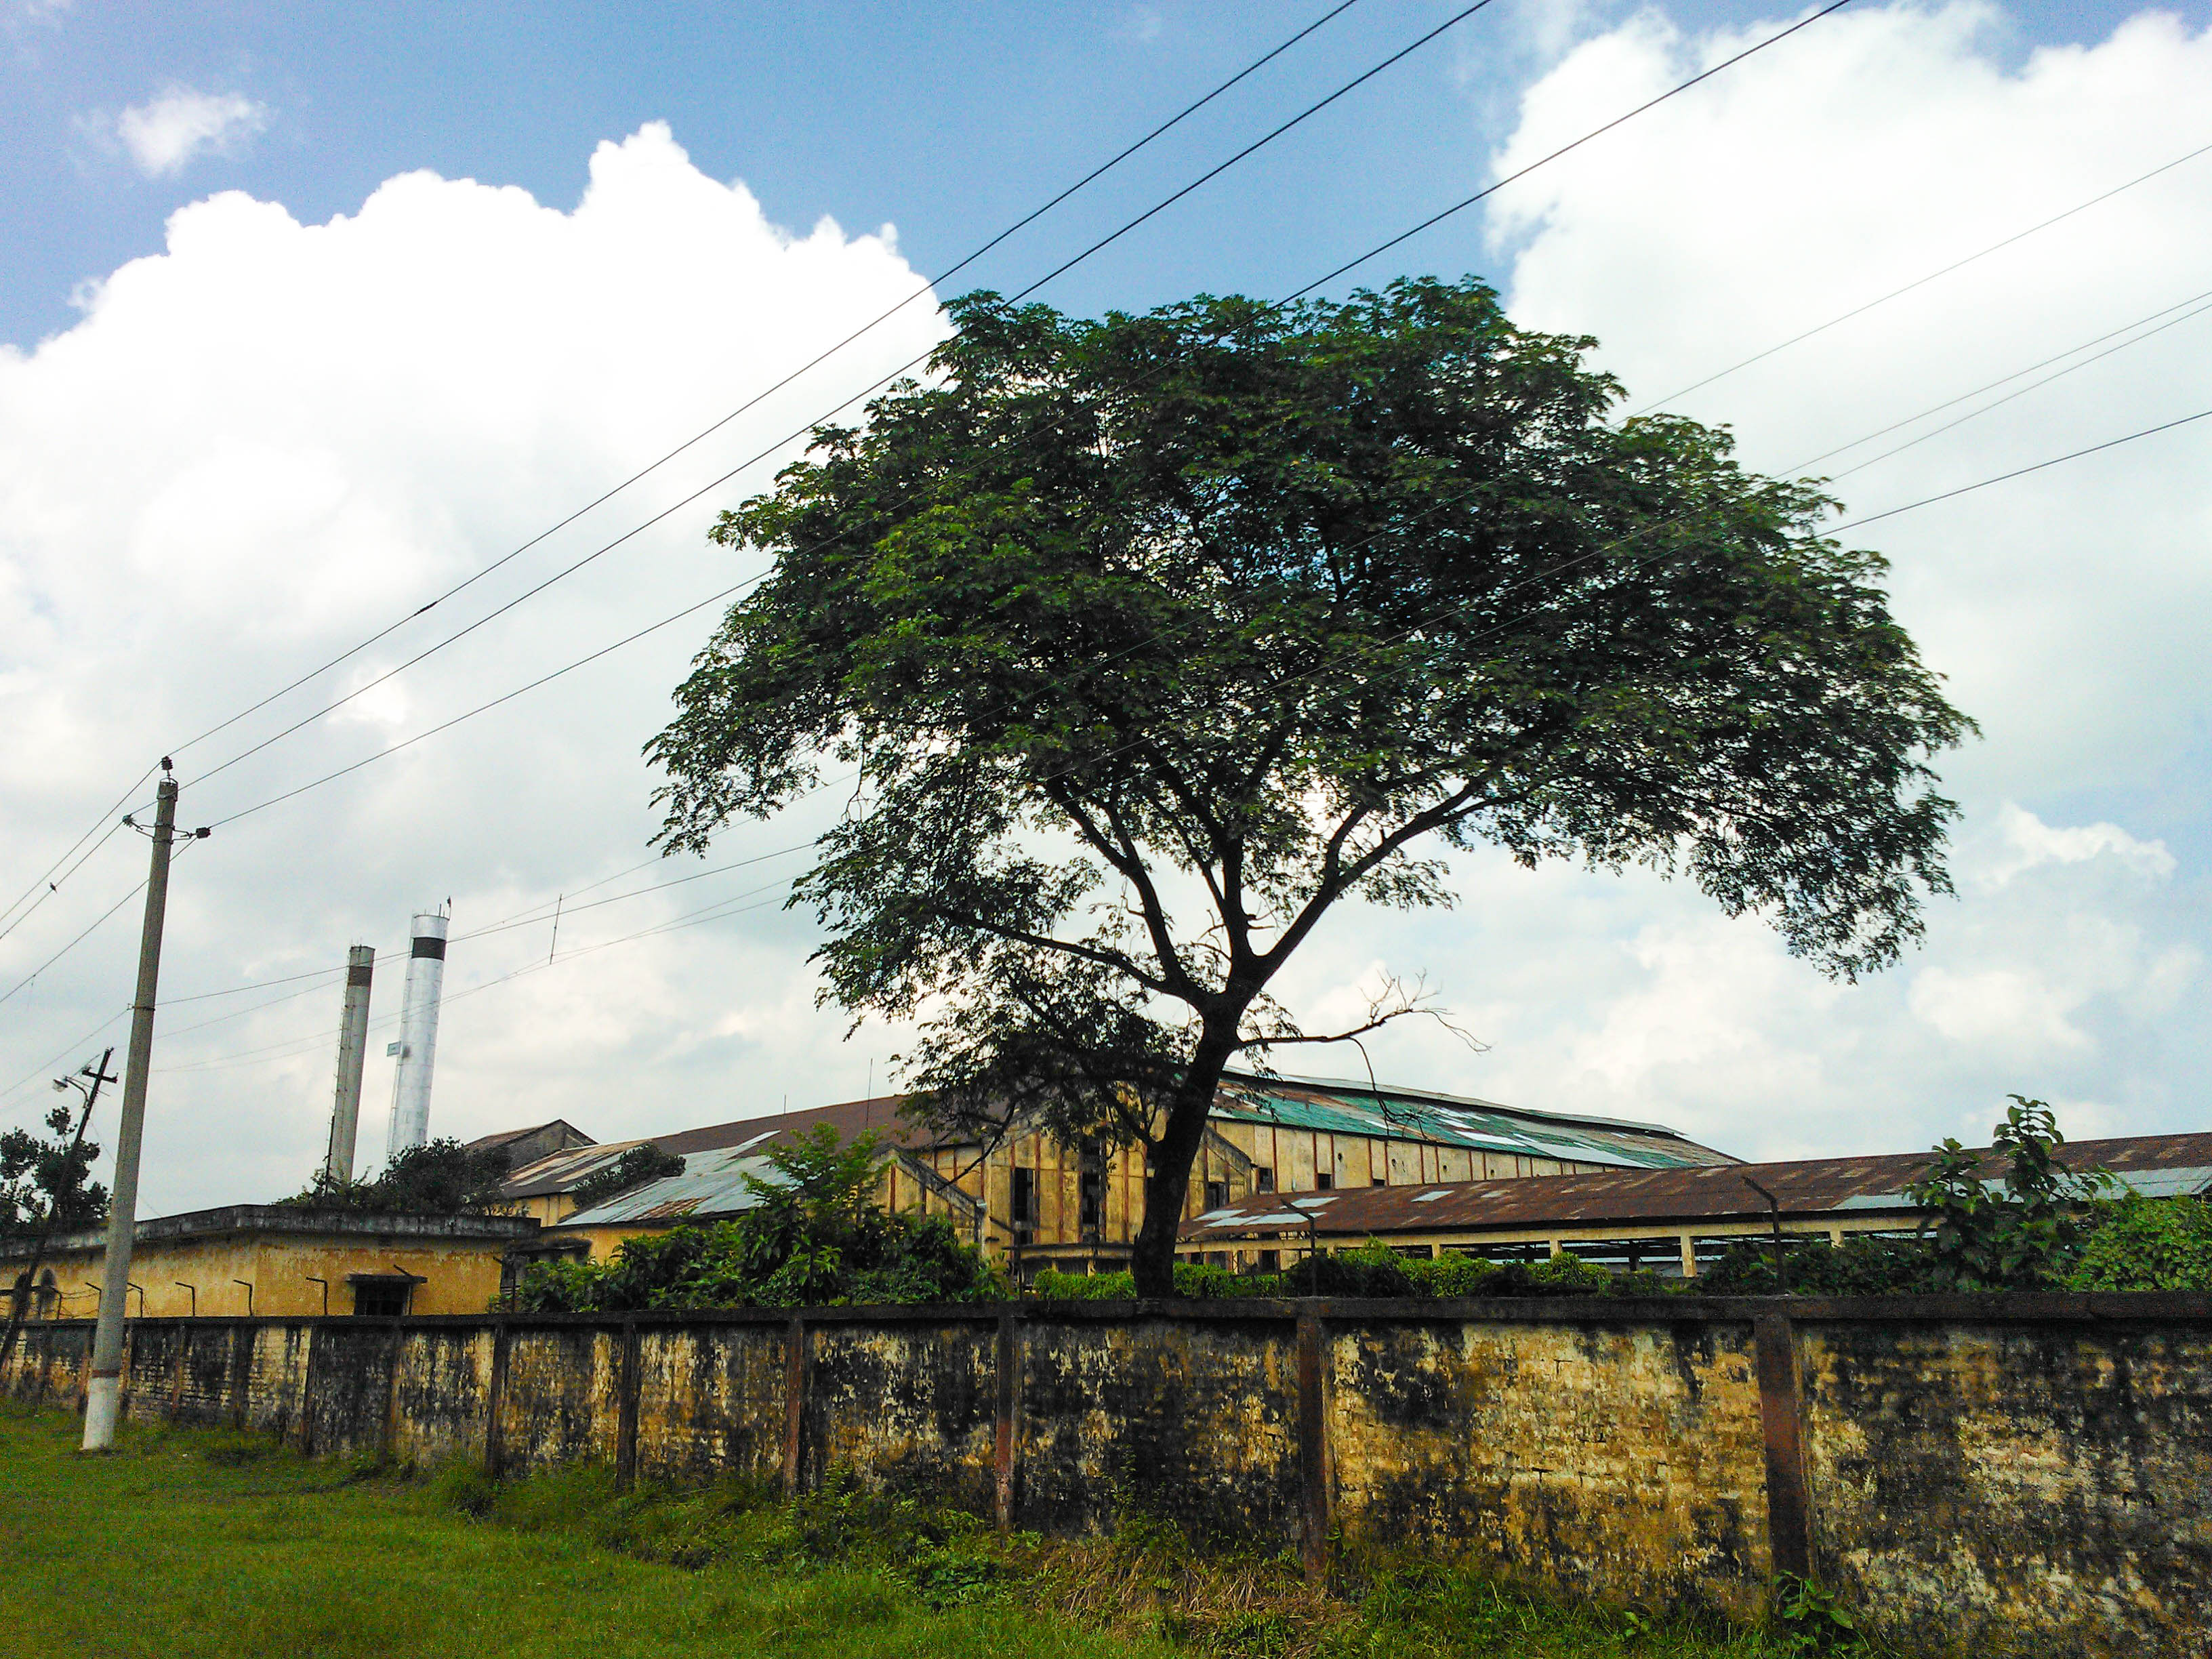 File:Rajshahi Sugar Mills Ltd. (Harian Suger Mill)3.jpg